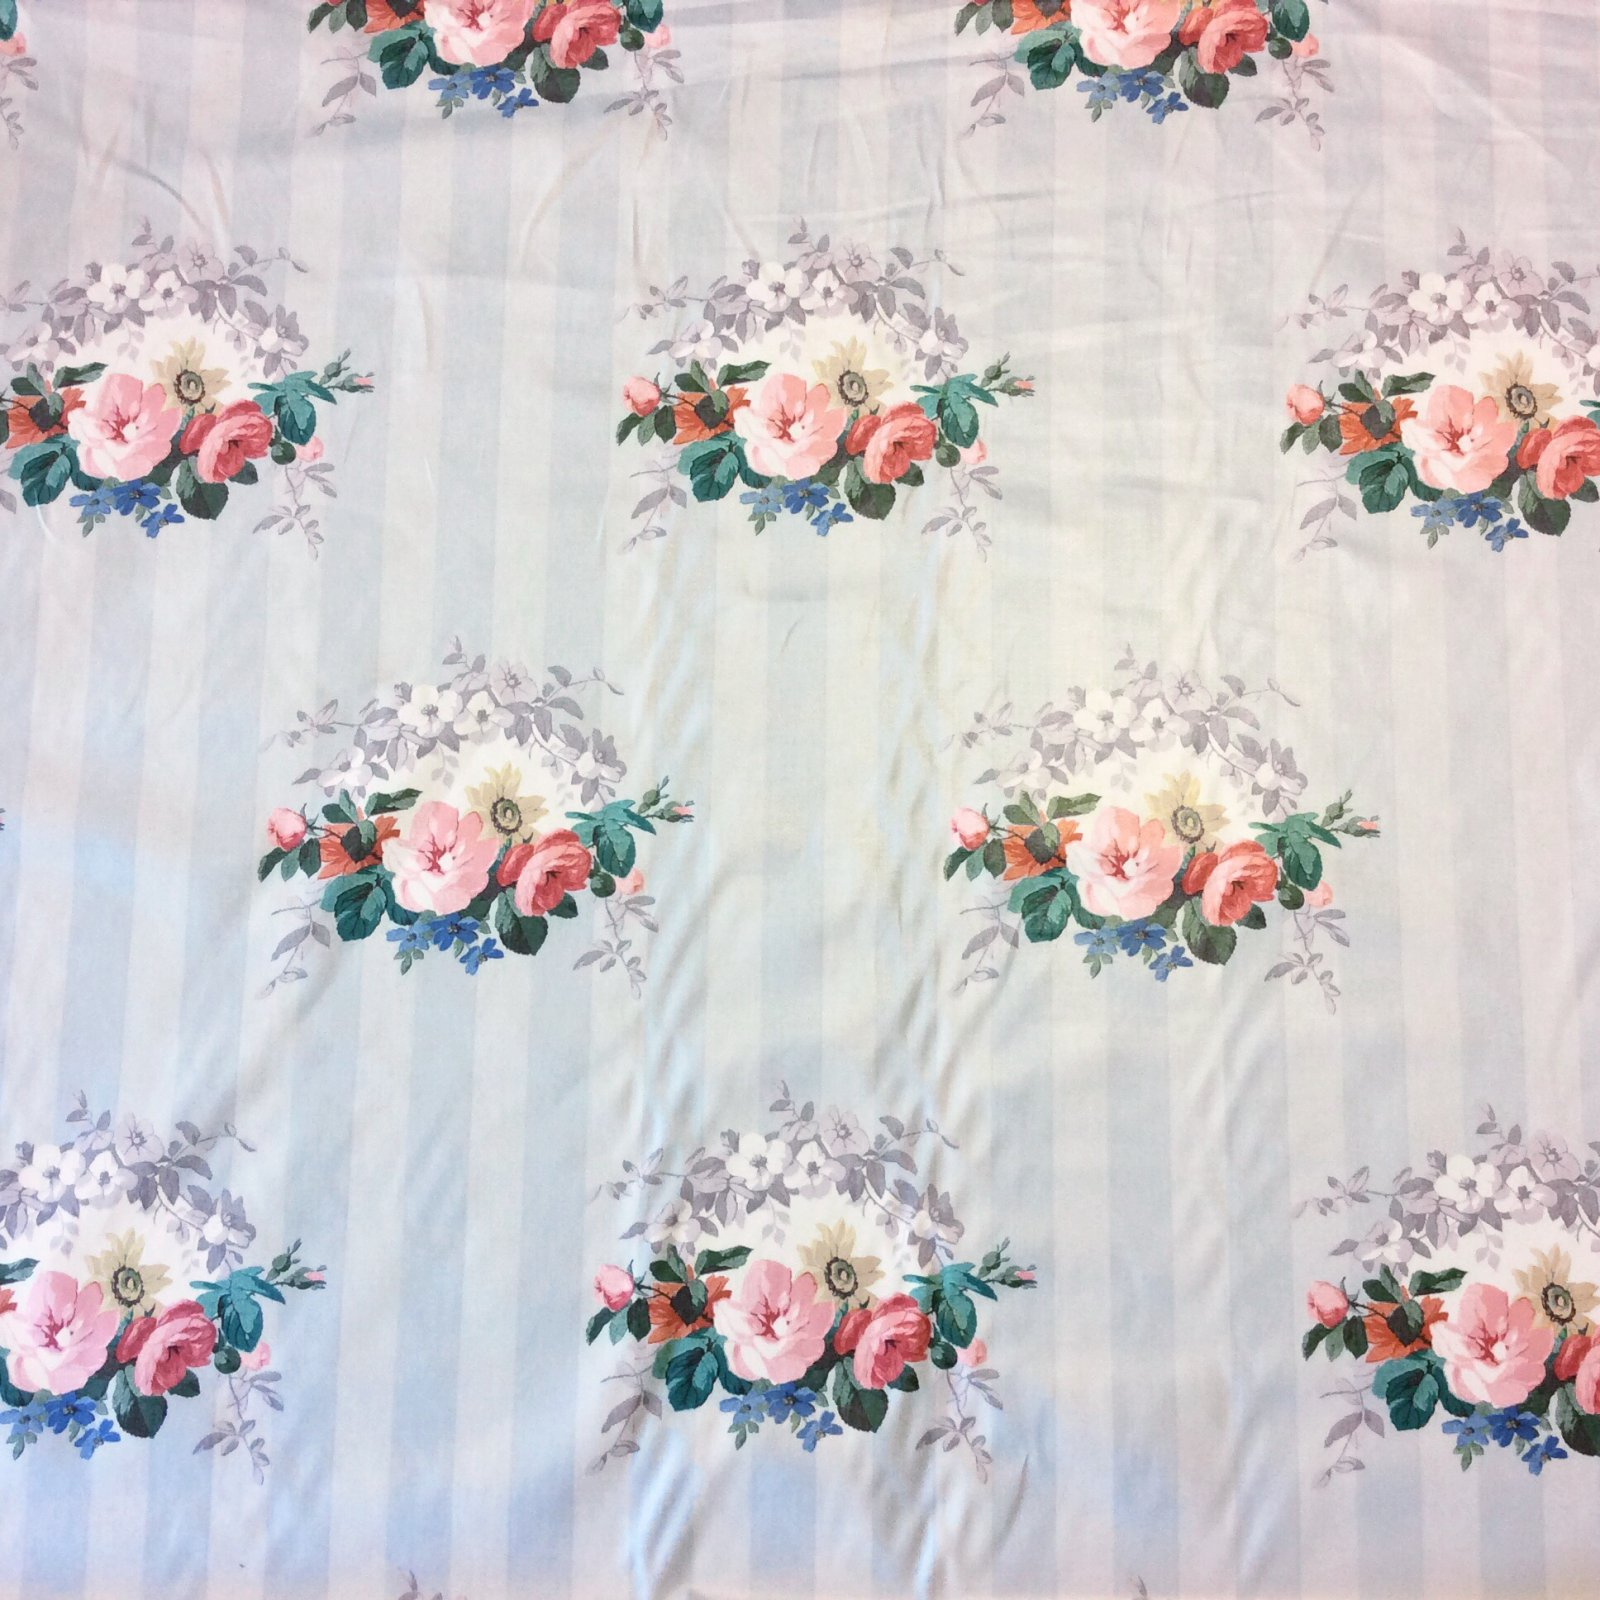 Ralph Lauren Chintz Shabby Chic English Garden Rose Floral Striped Polished Cotton Vintage Drapery Fabric LHD201